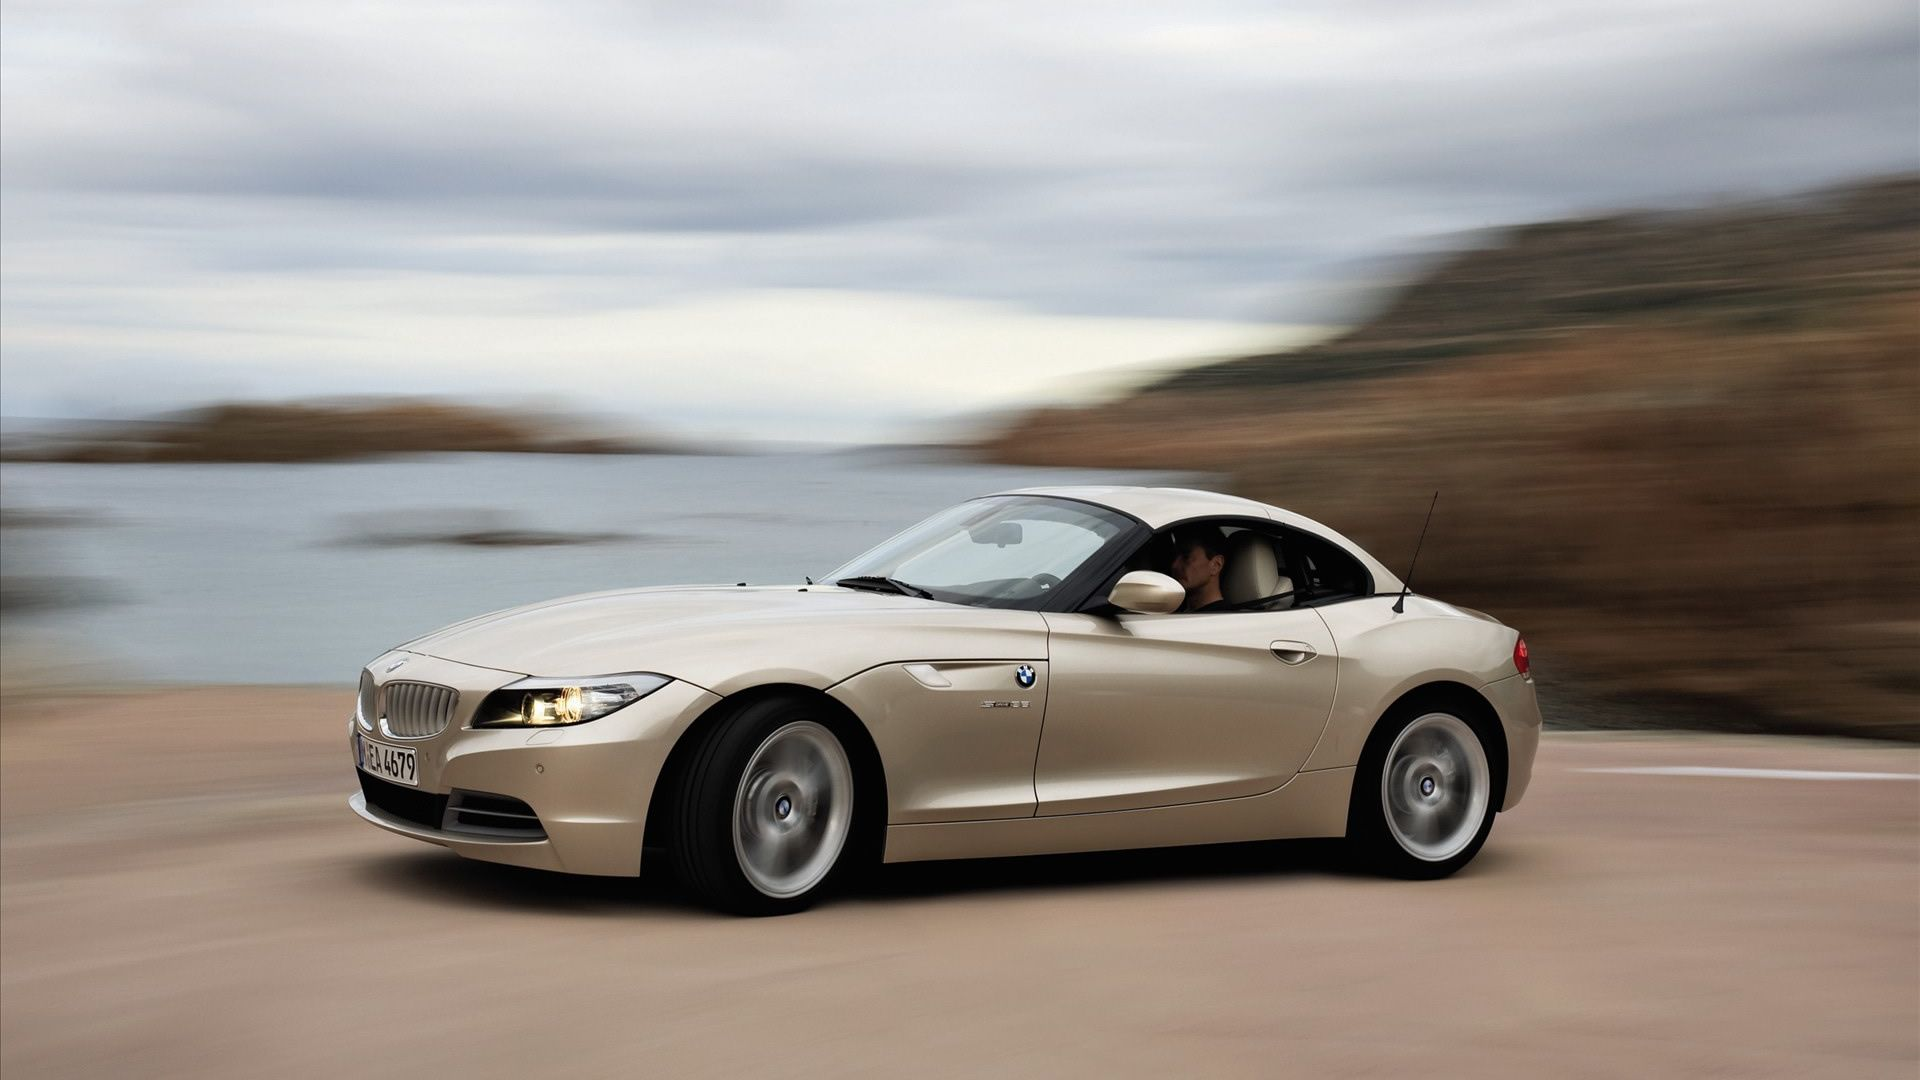 BMW Sports Car | BMW Sports Car HD Wallpapers, Download Free BMW Sports HD  Wallpapers .